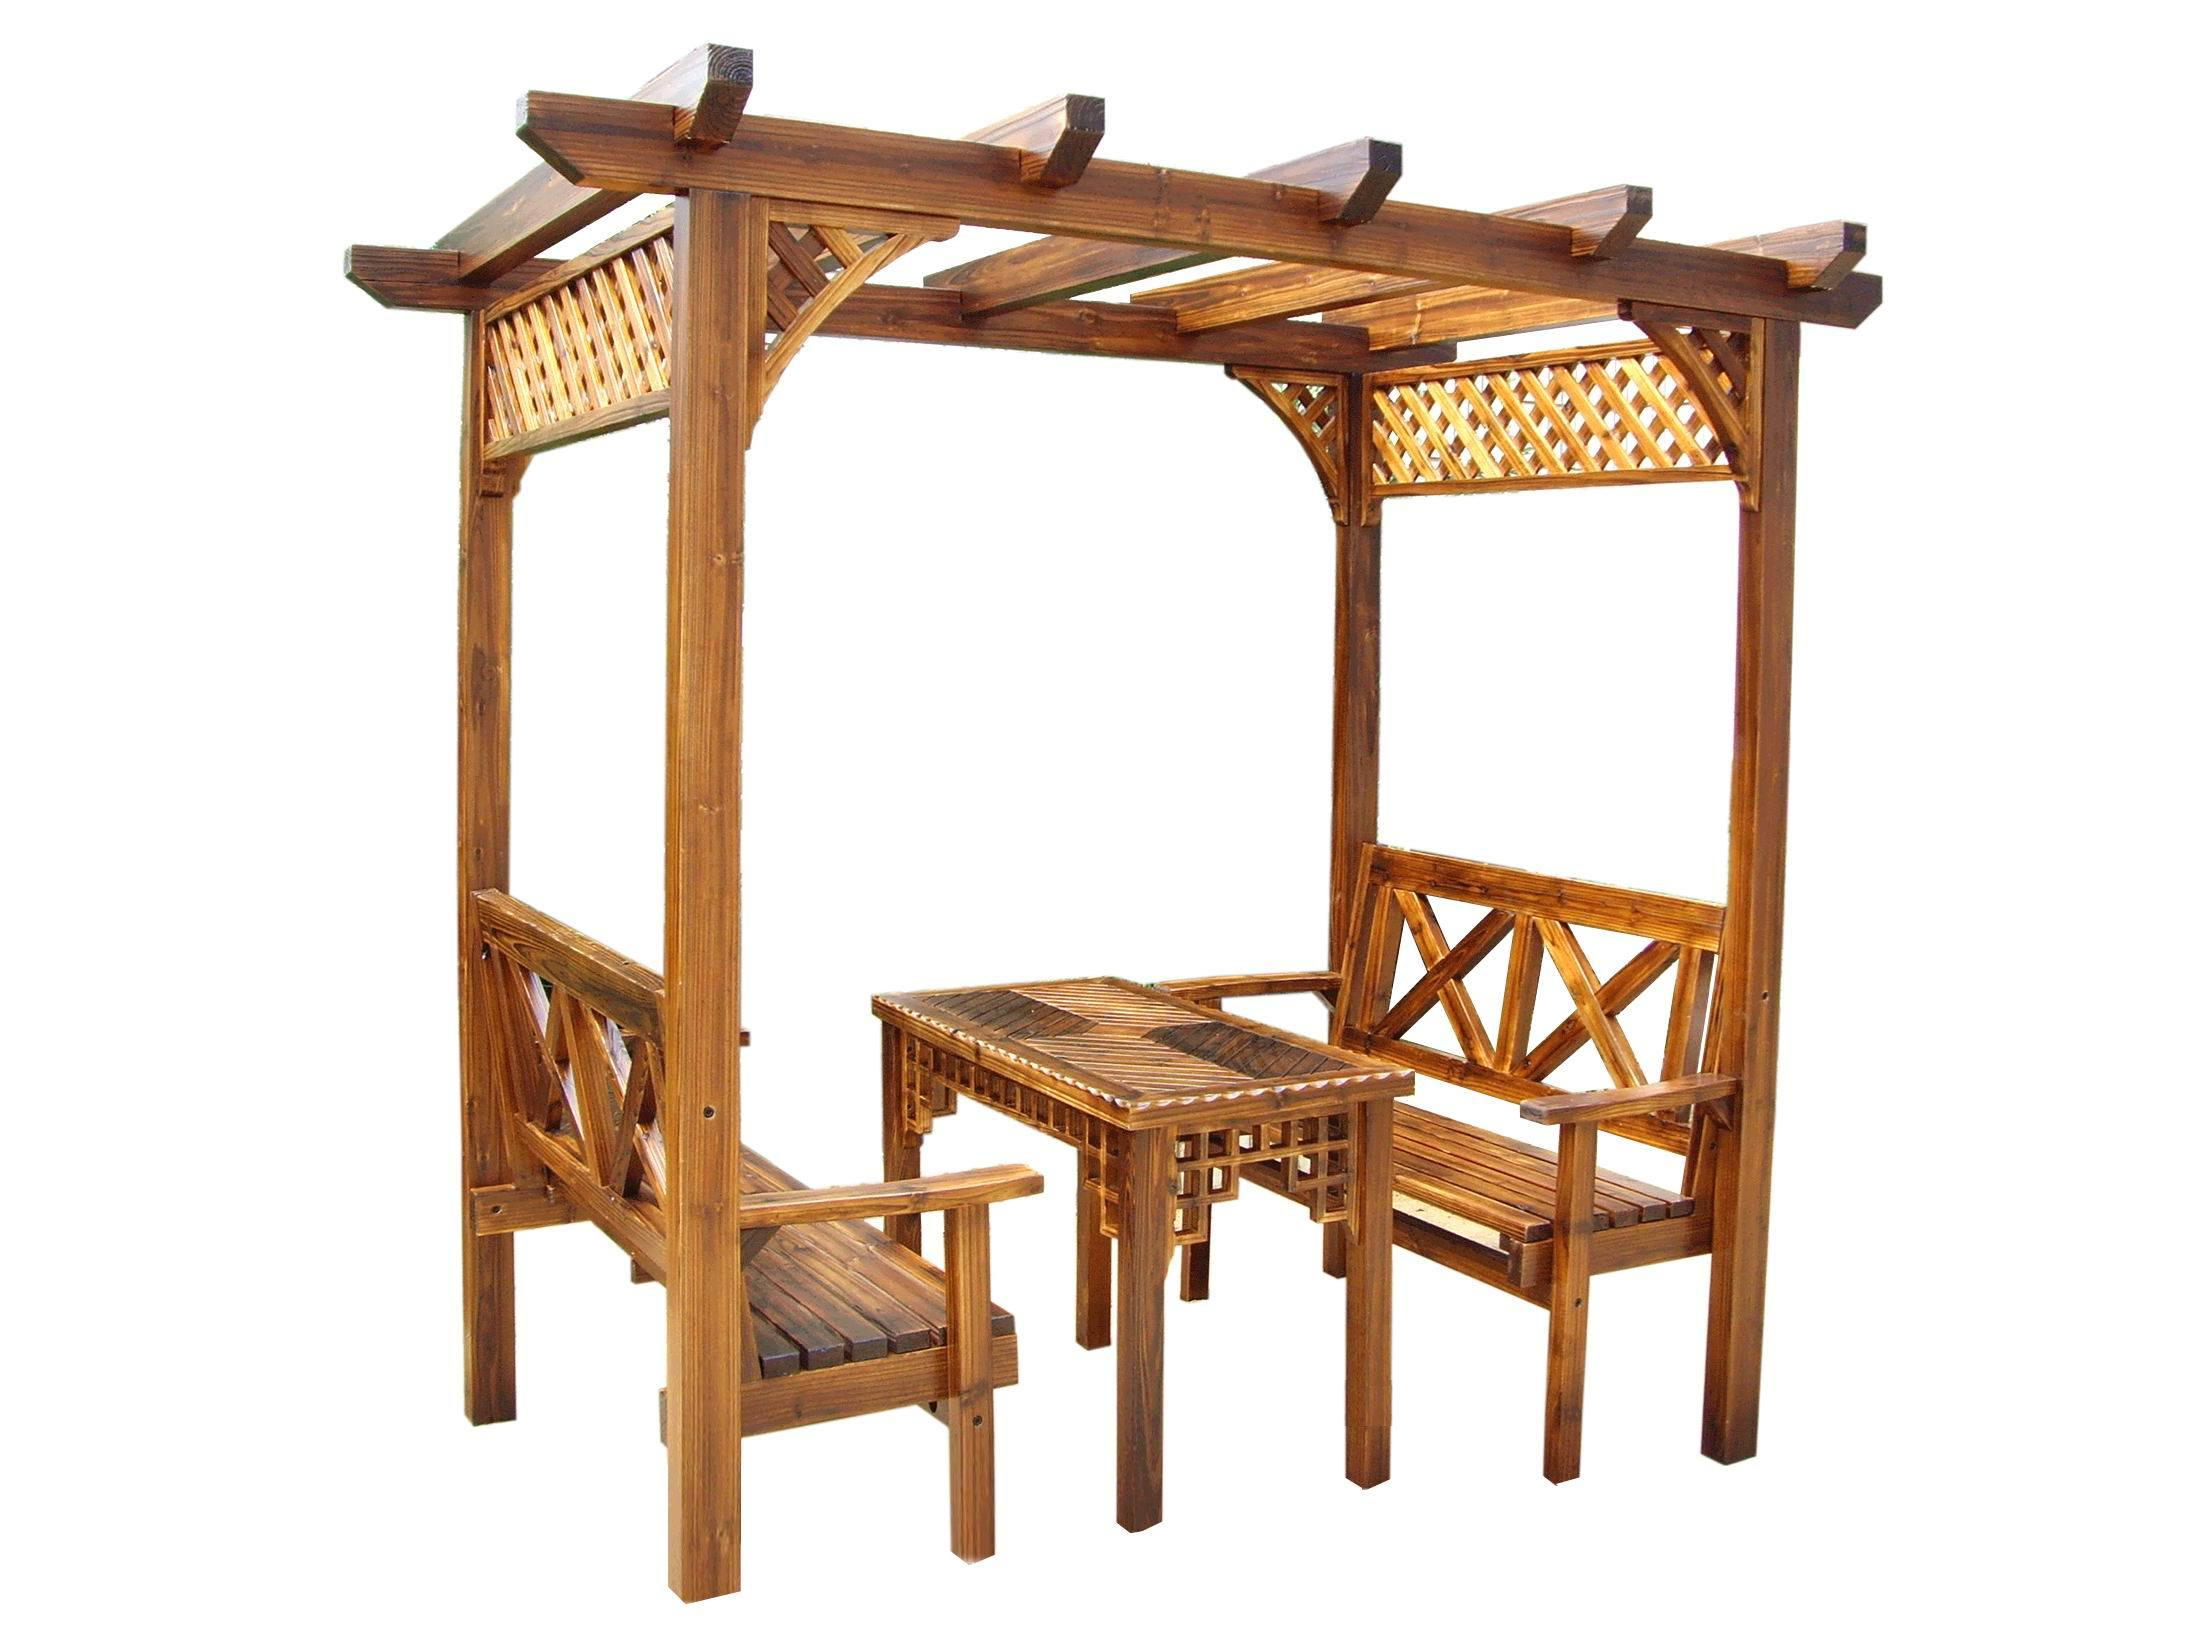 Outdoor furniture woodworking plans new design